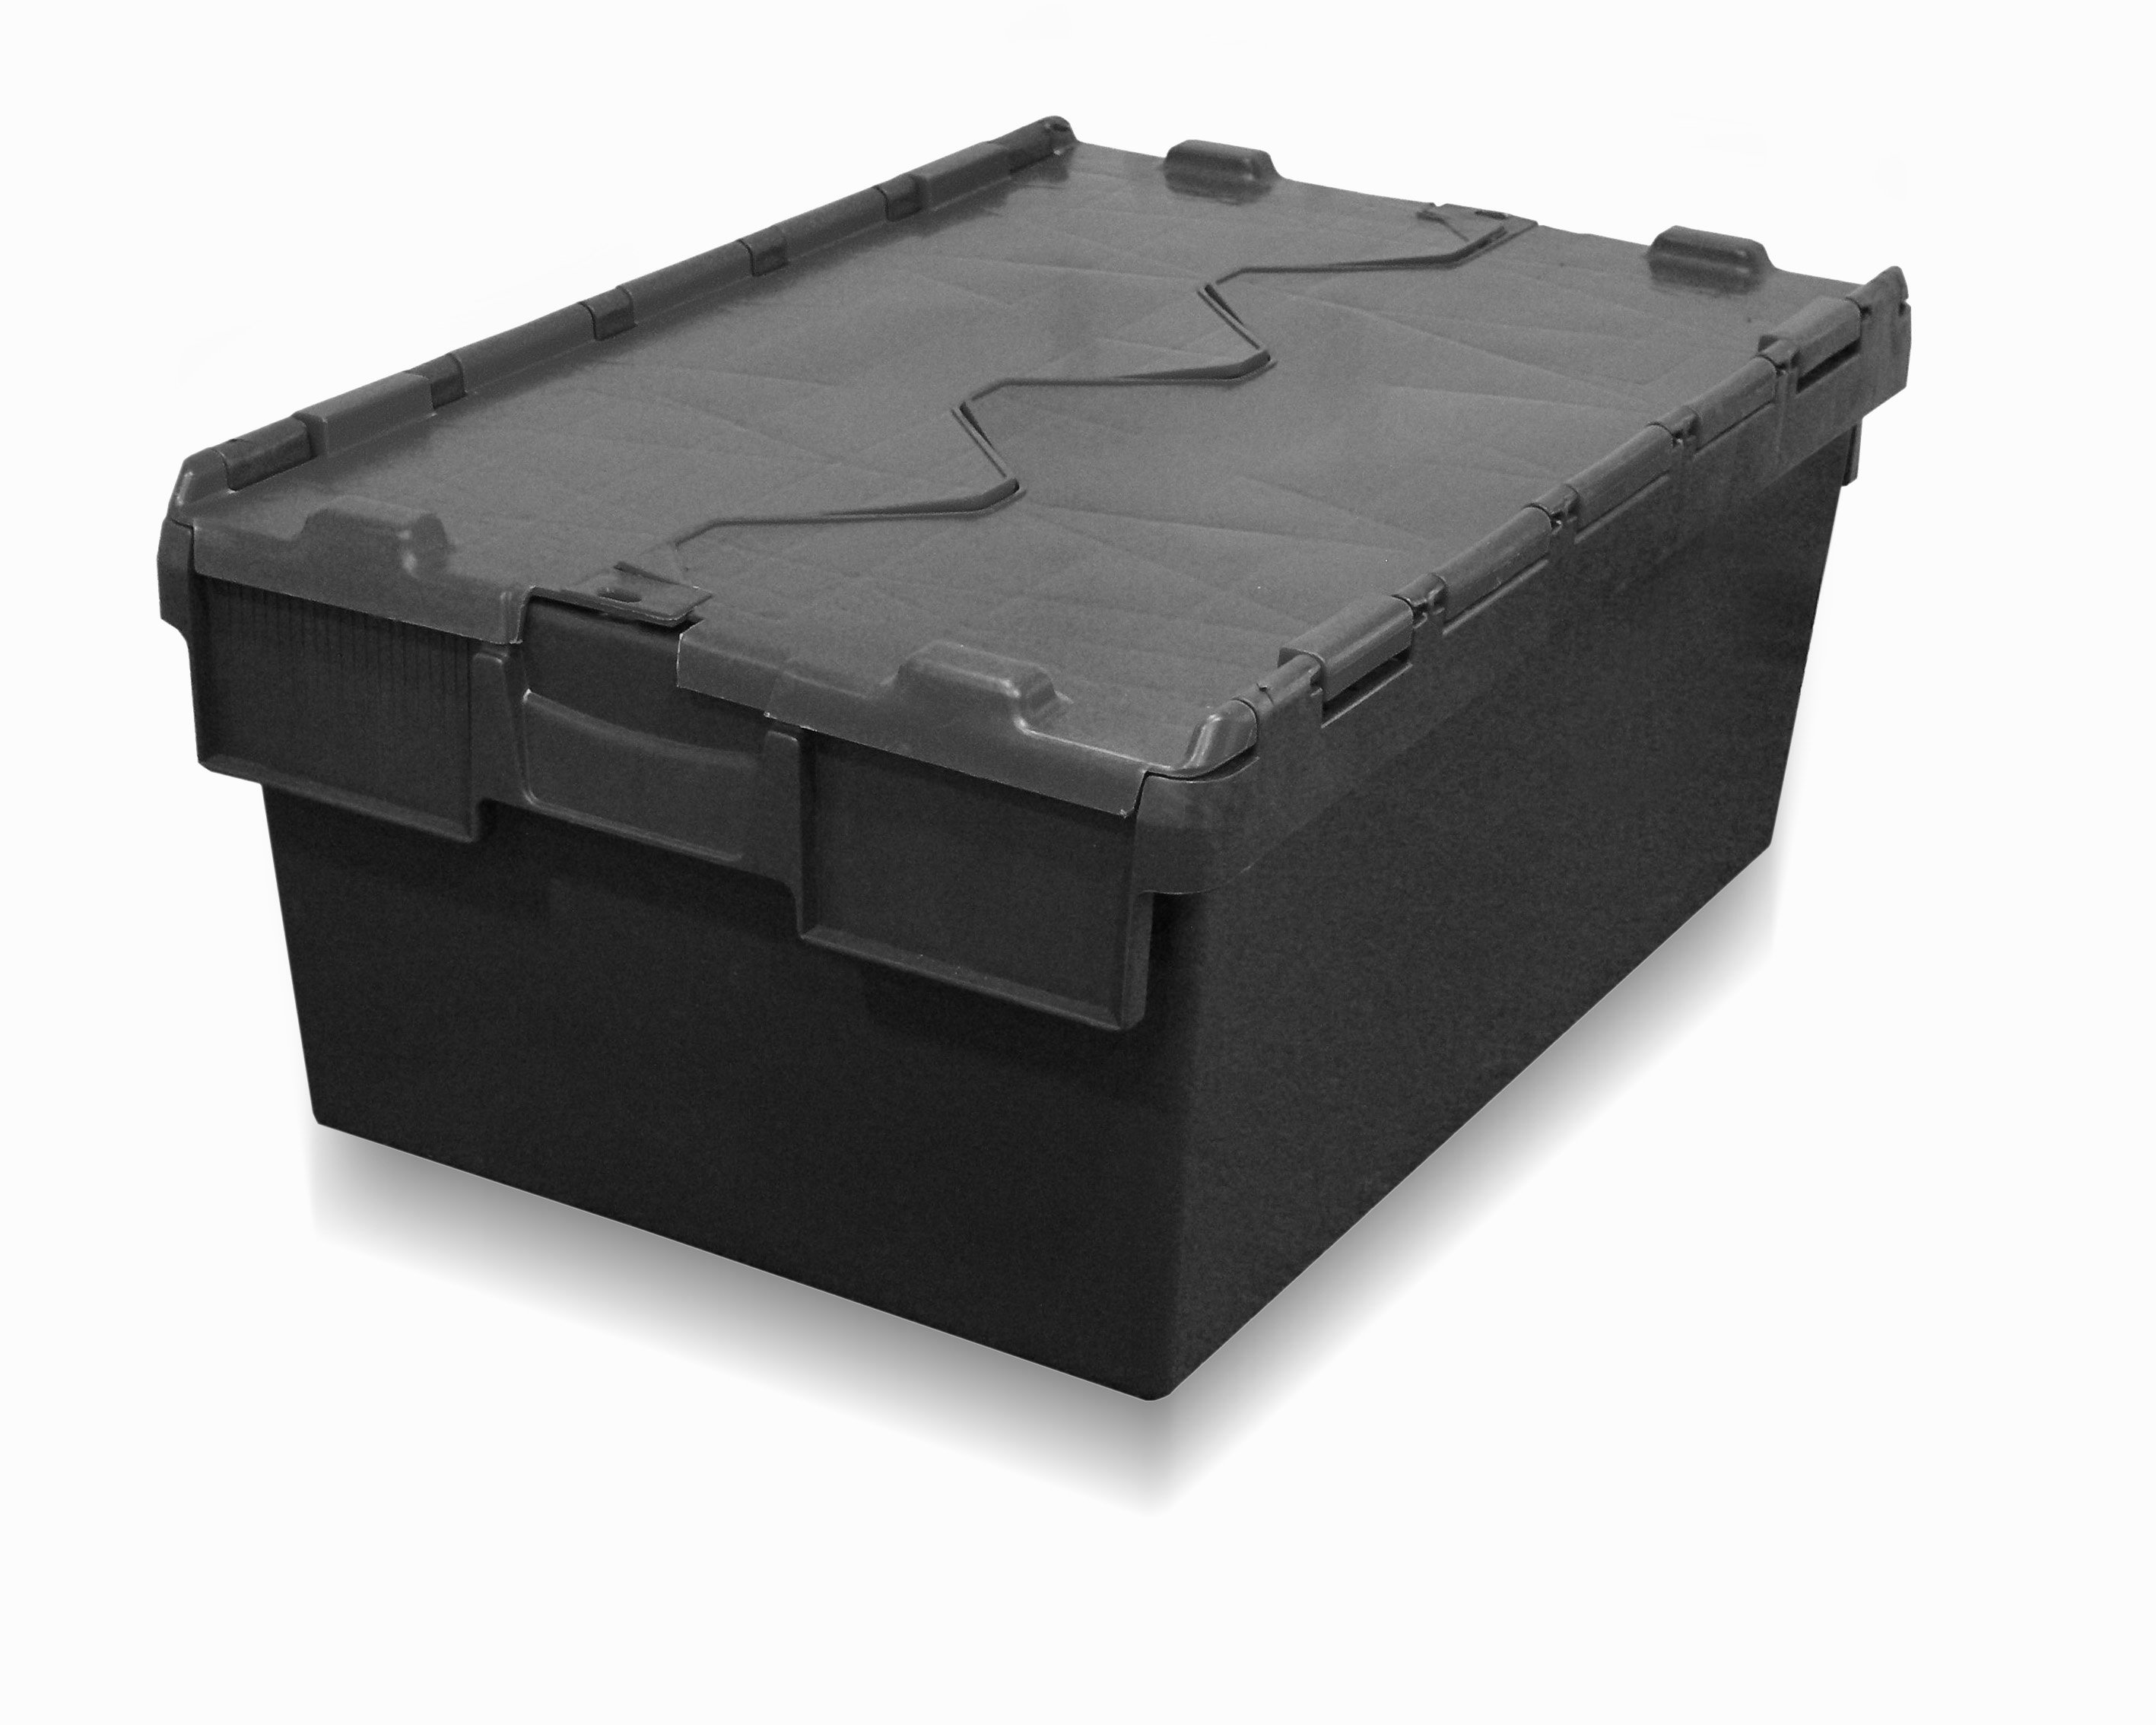 40l attached lid container / tote box / black regrind